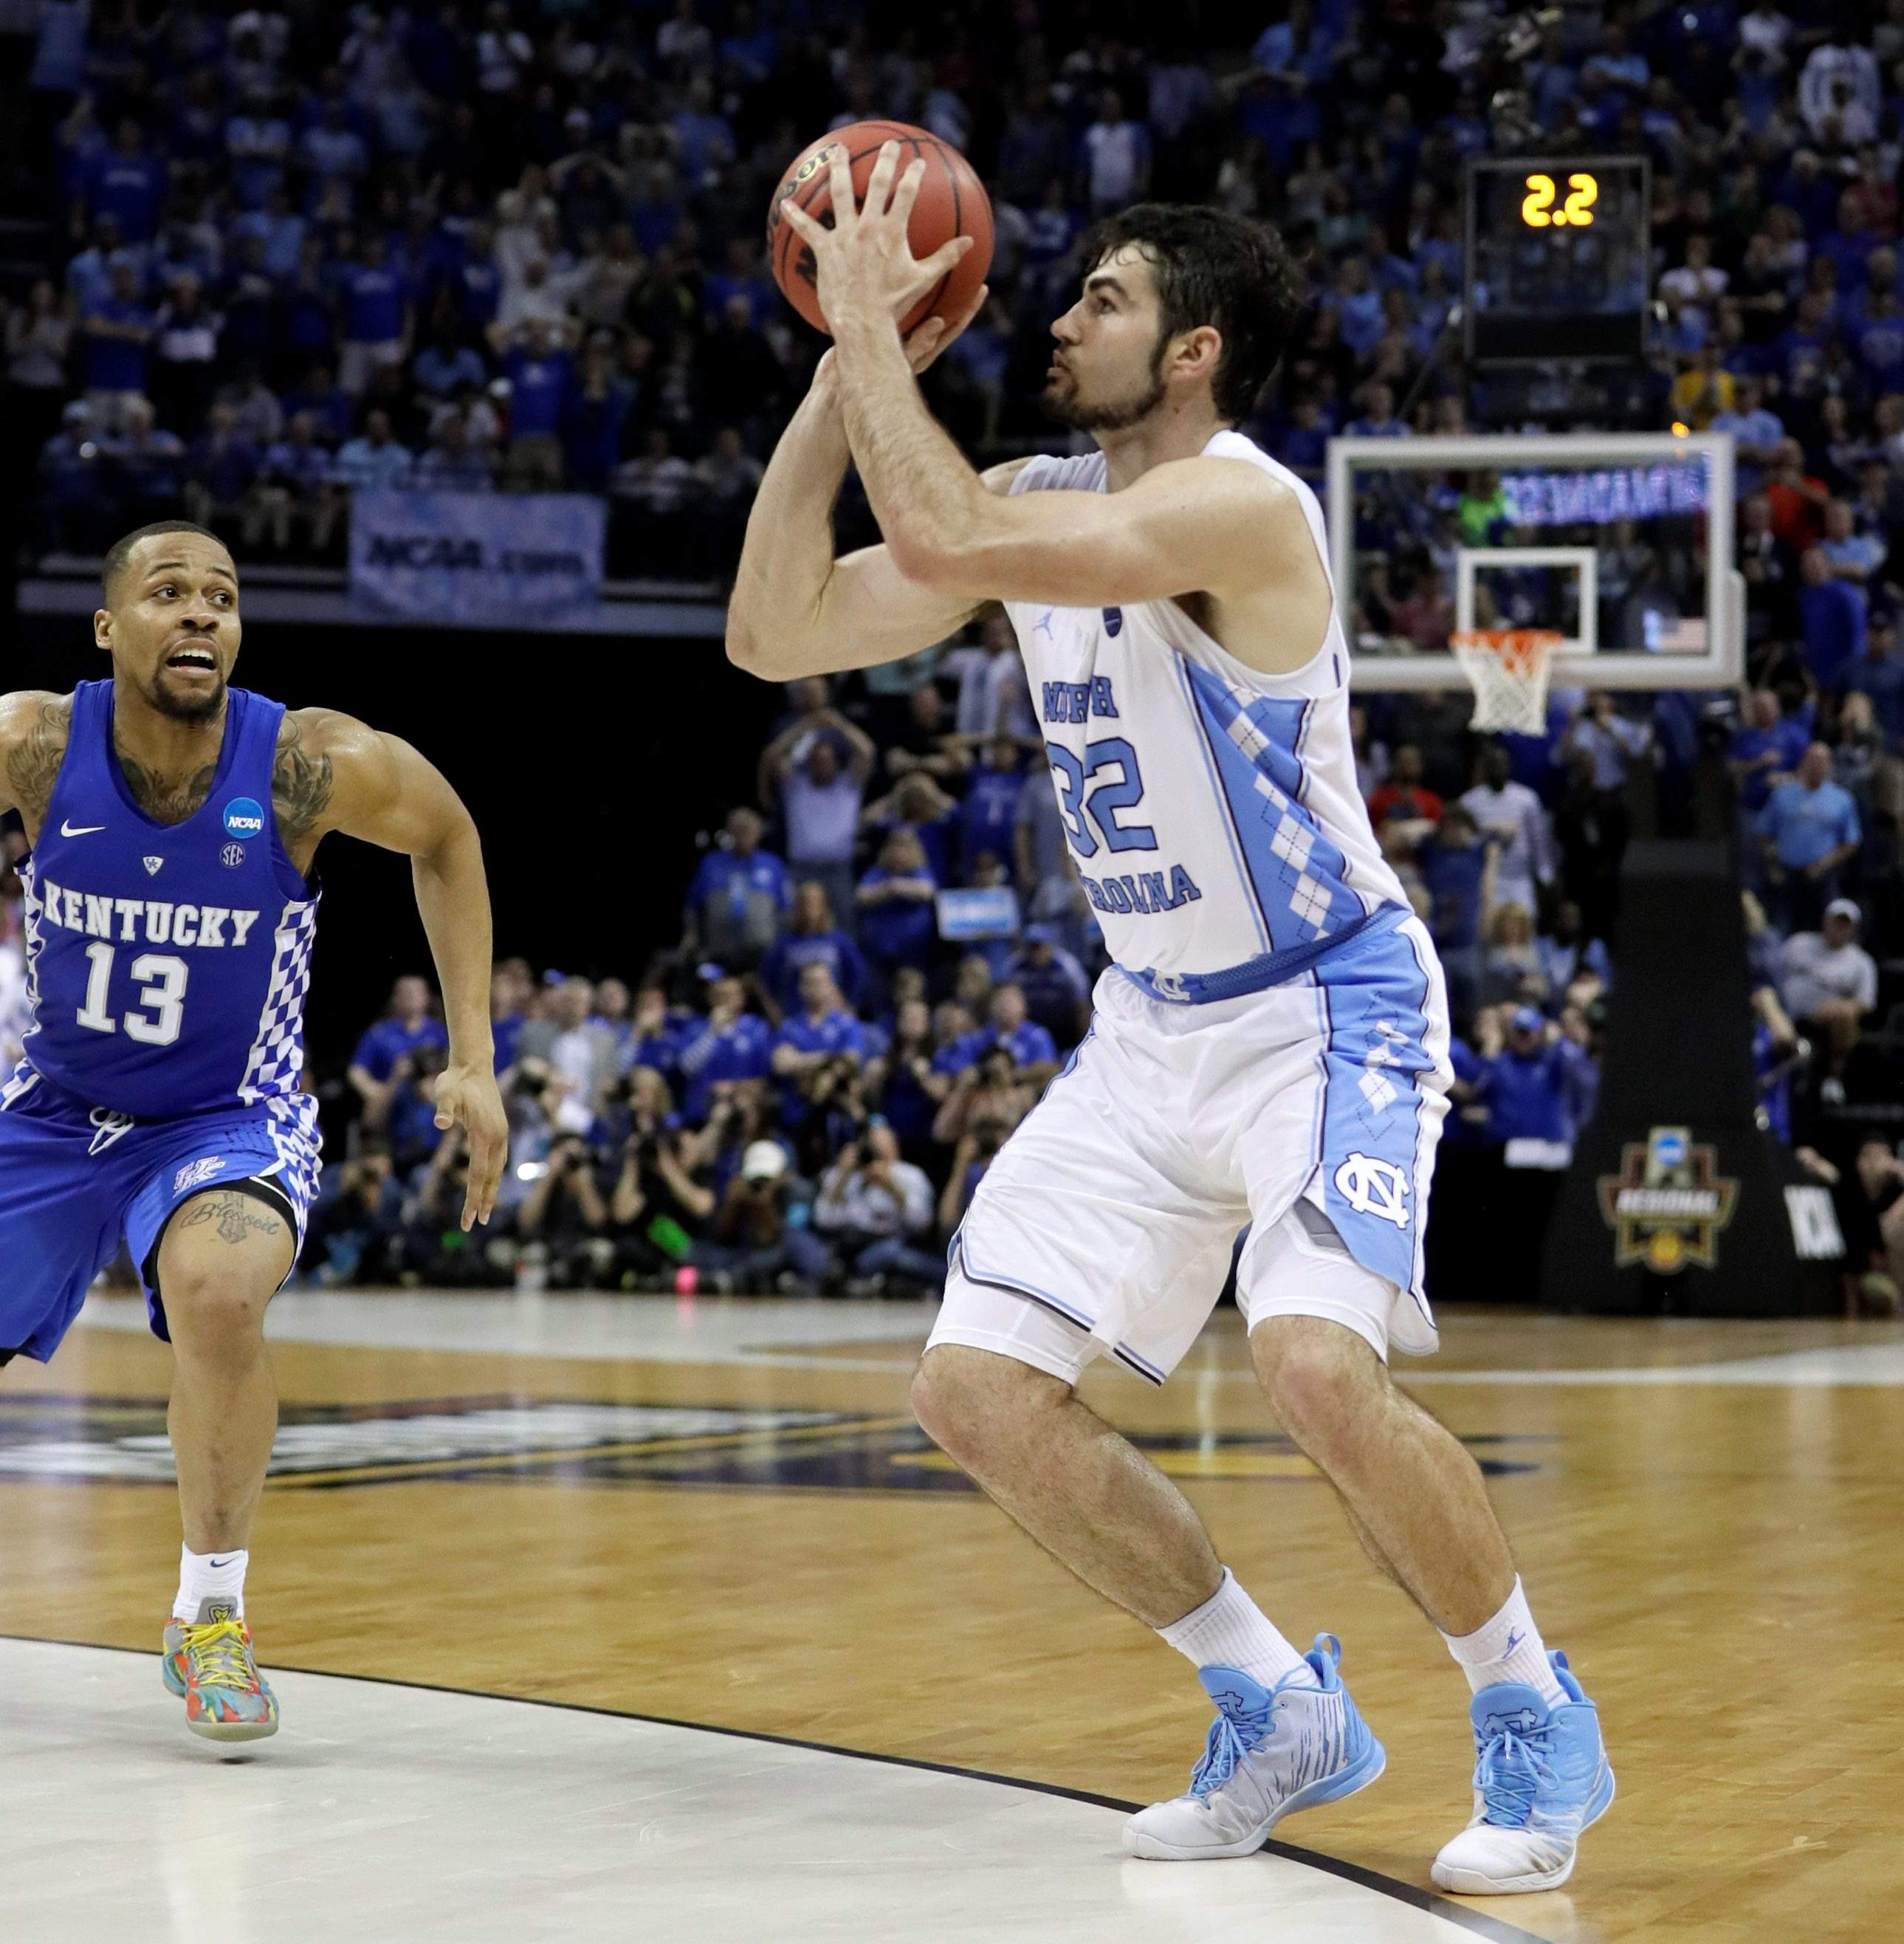 Last-second hoop lifts Tar Heels into Final Four